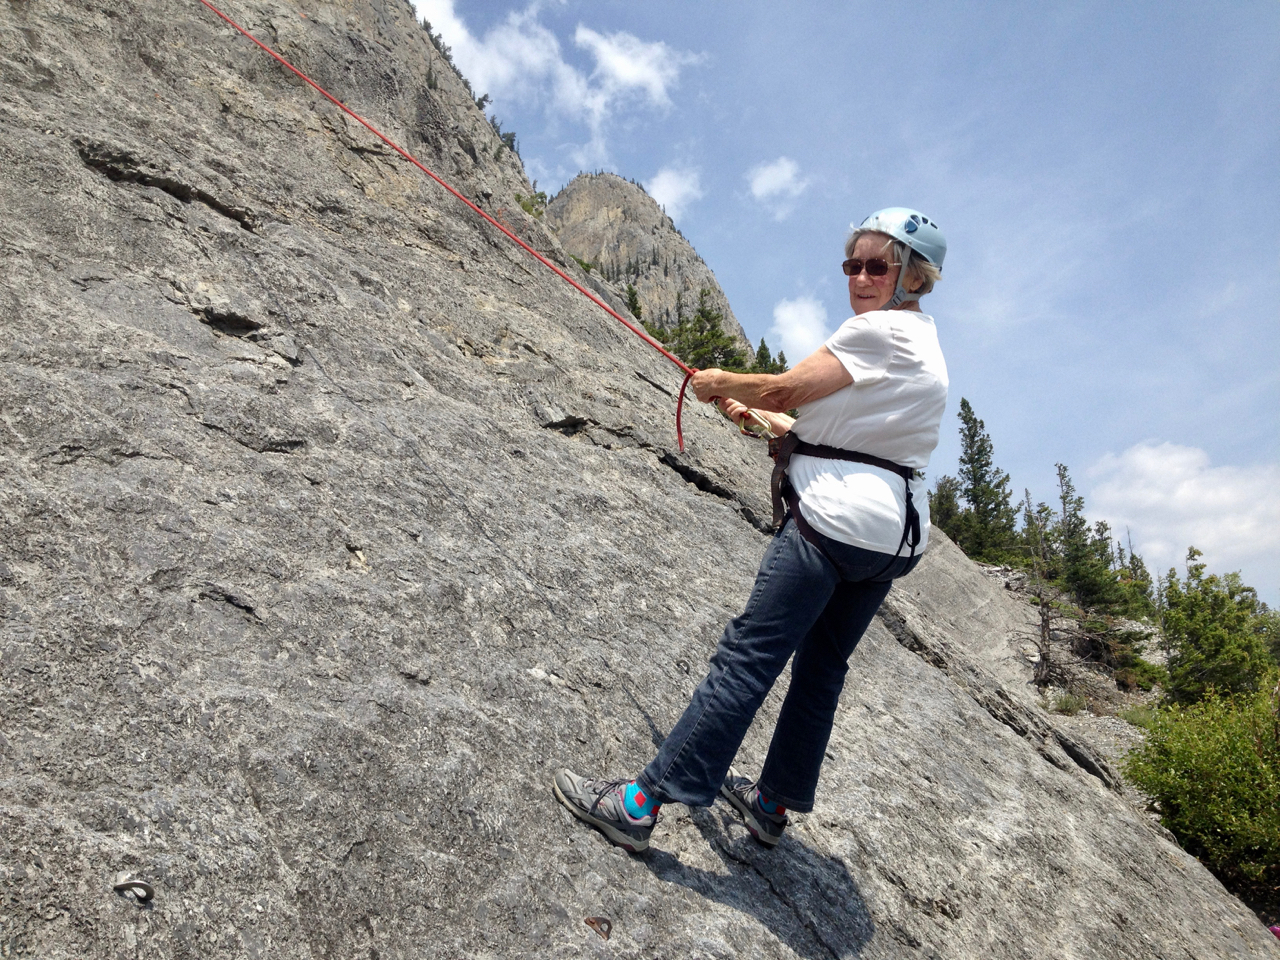 If this 85 year old can do it so can you! My Mom on her way down after another successful climb!